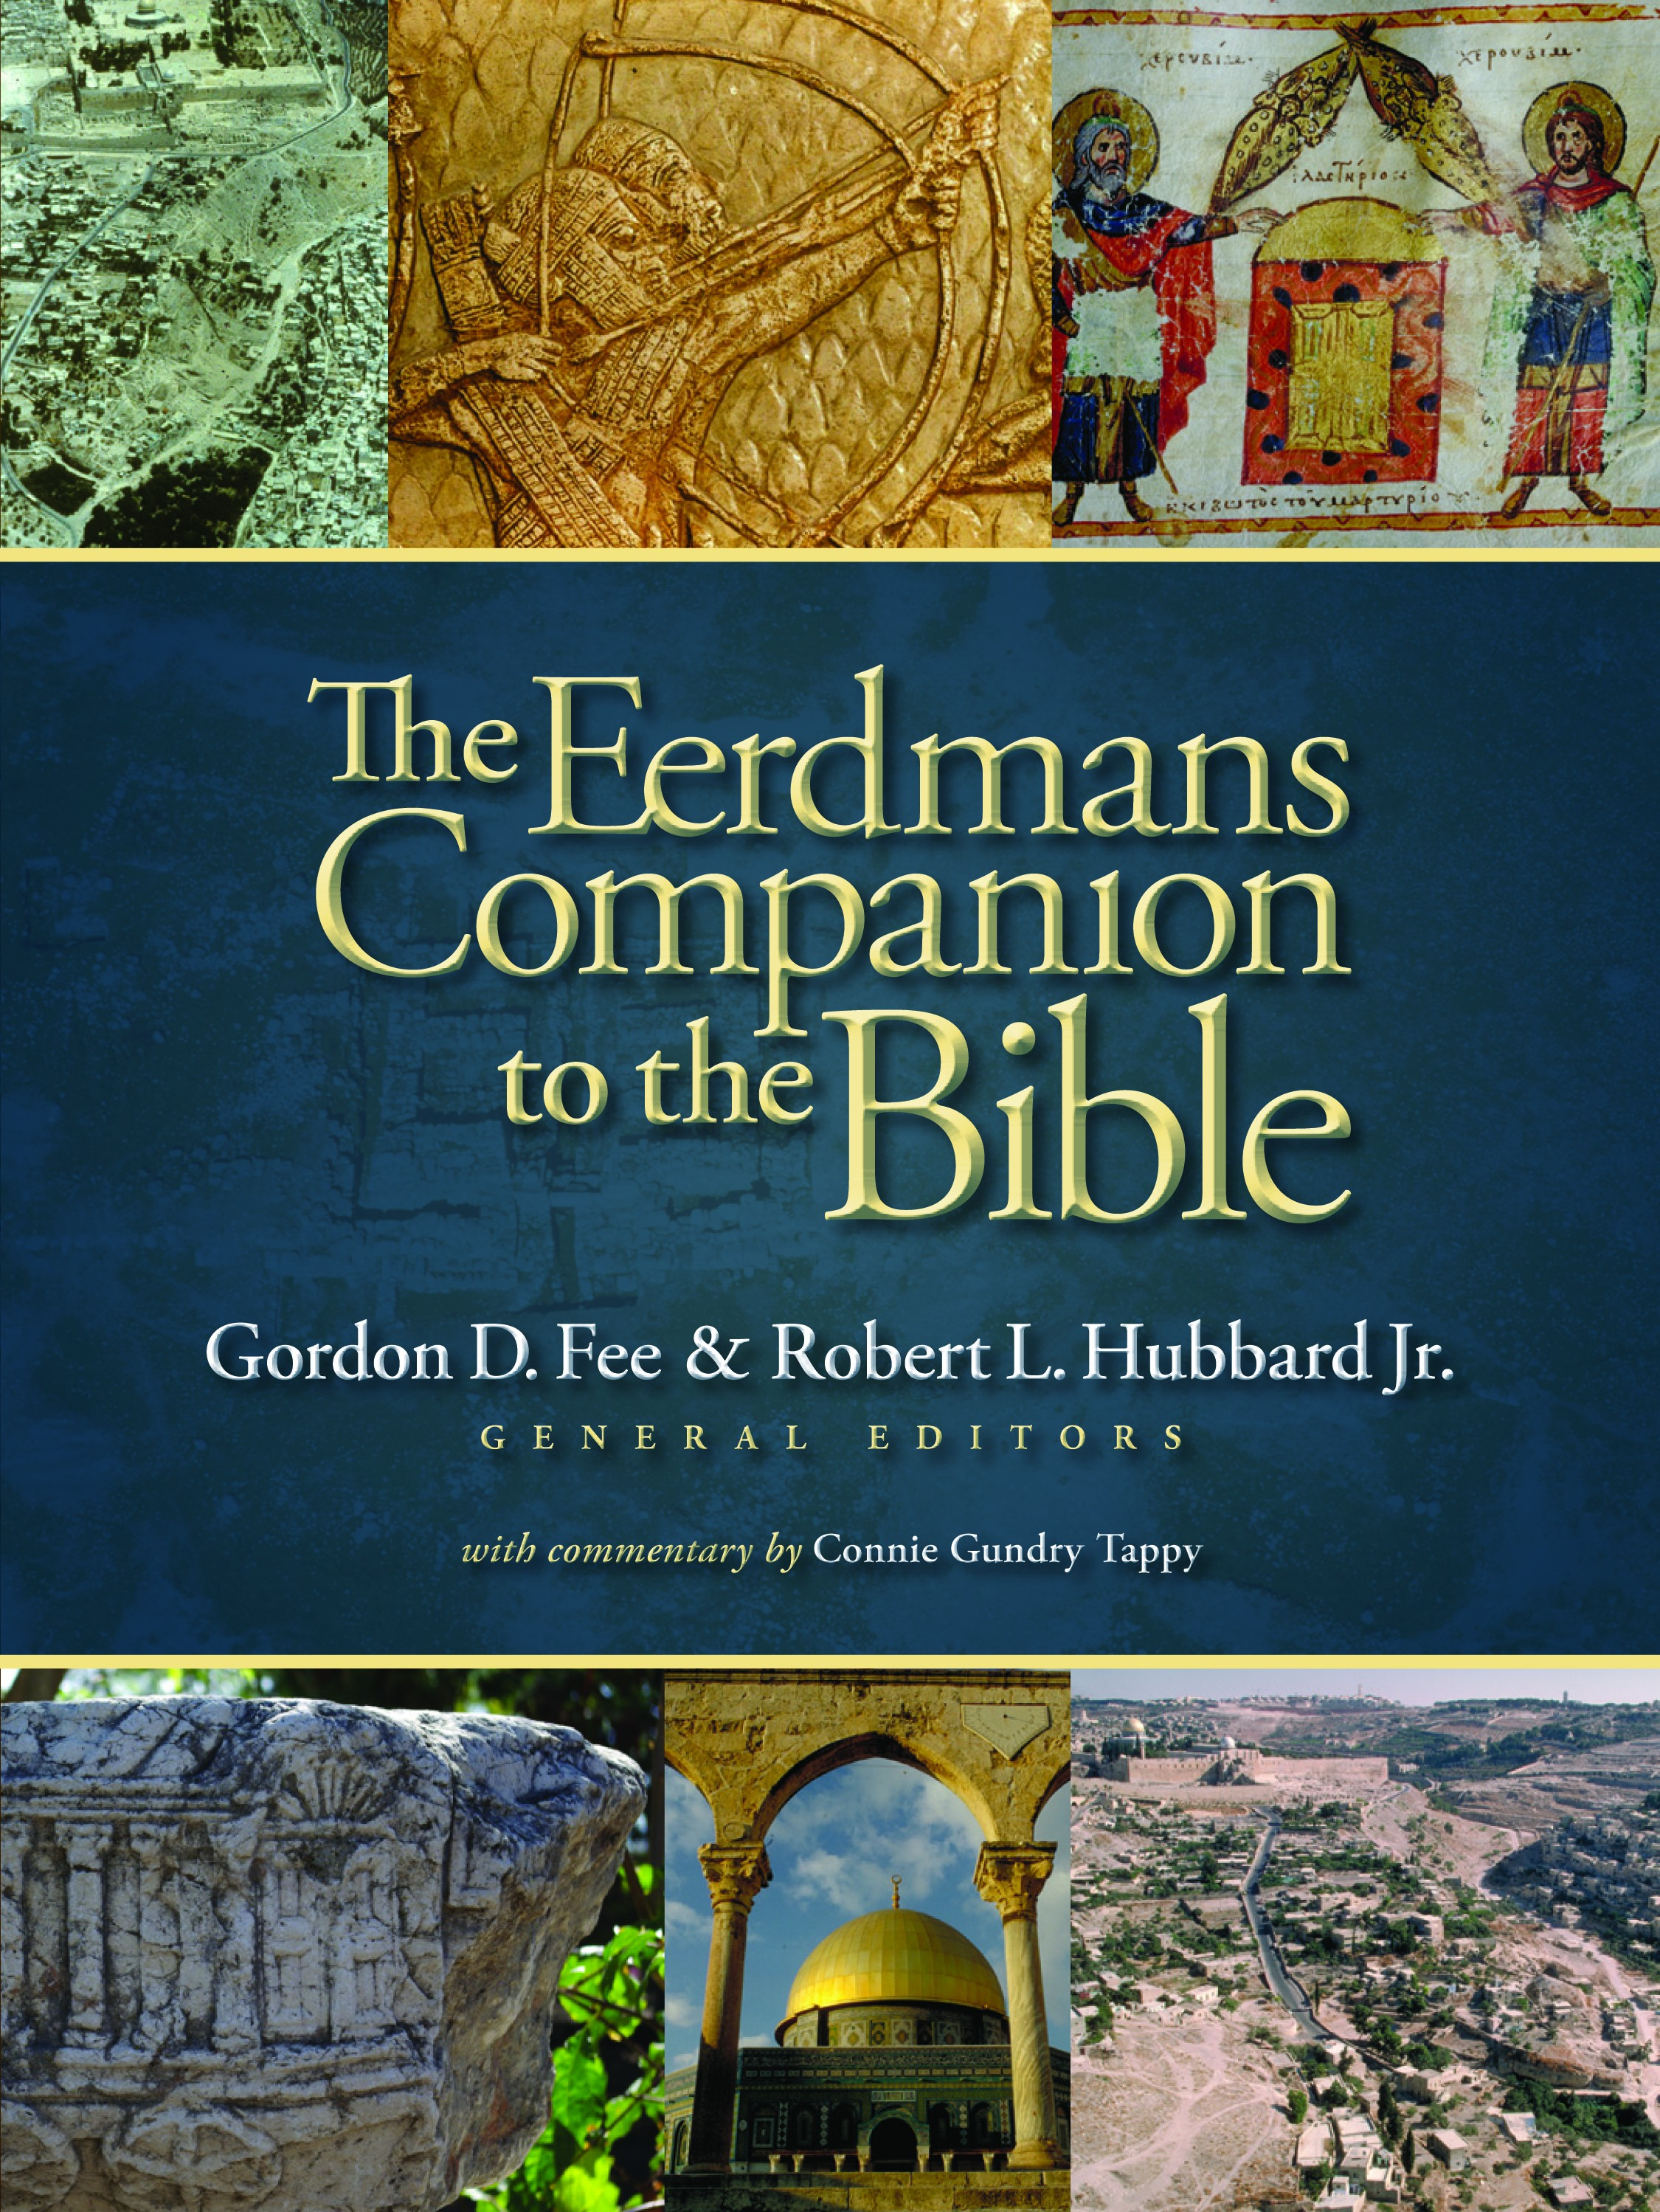 The eerdmans companion to the bible robert l hubbard jr gordon the eerdmans companion to the bible robert l hubbard jr gordon d fee eerdmans fandeluxe Gallery